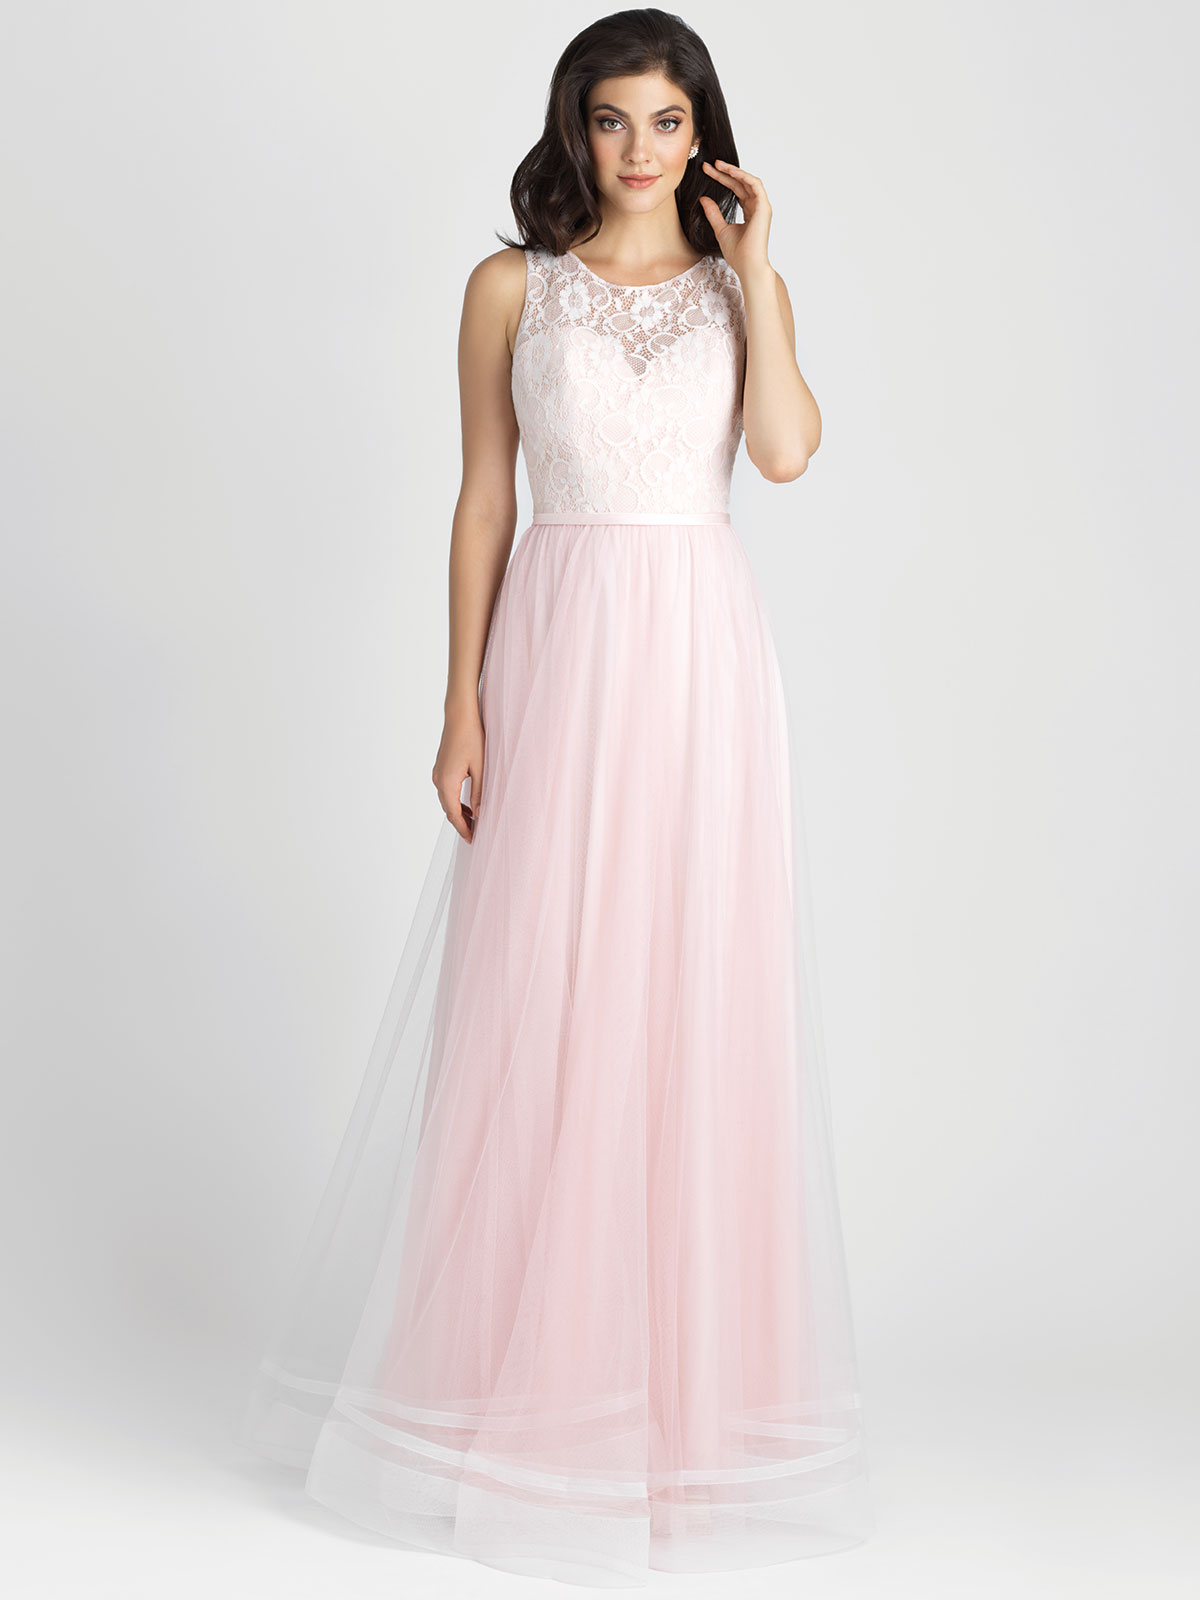 Allure 1509 sweetheart a line bridesmaid dressdimitradesigns allure 1509 sweetheart bridesmaid dress ombrellifo Images